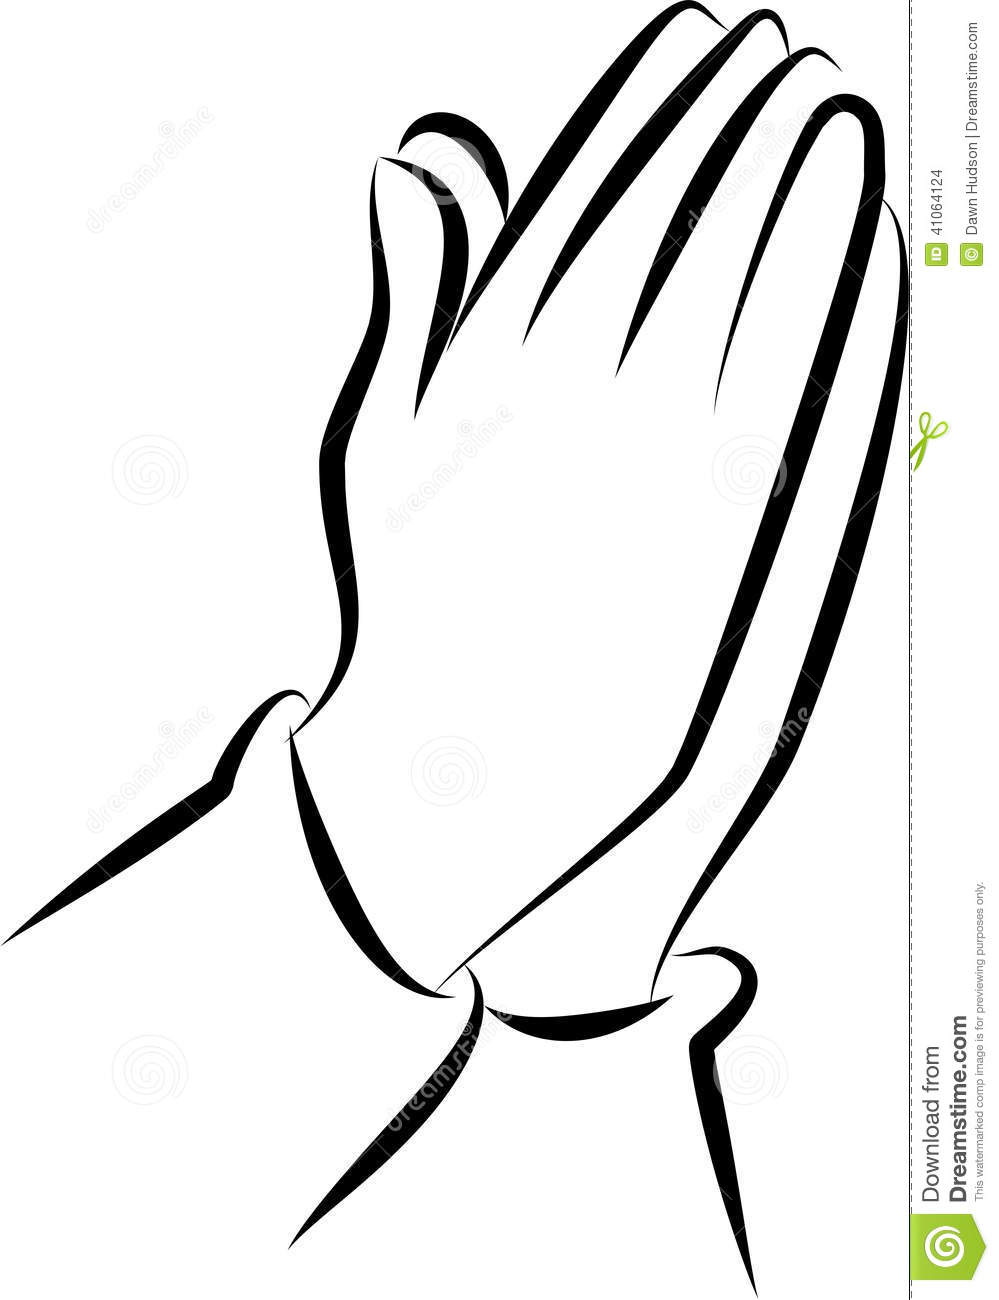 11 Simple Praying Hands Vector Images